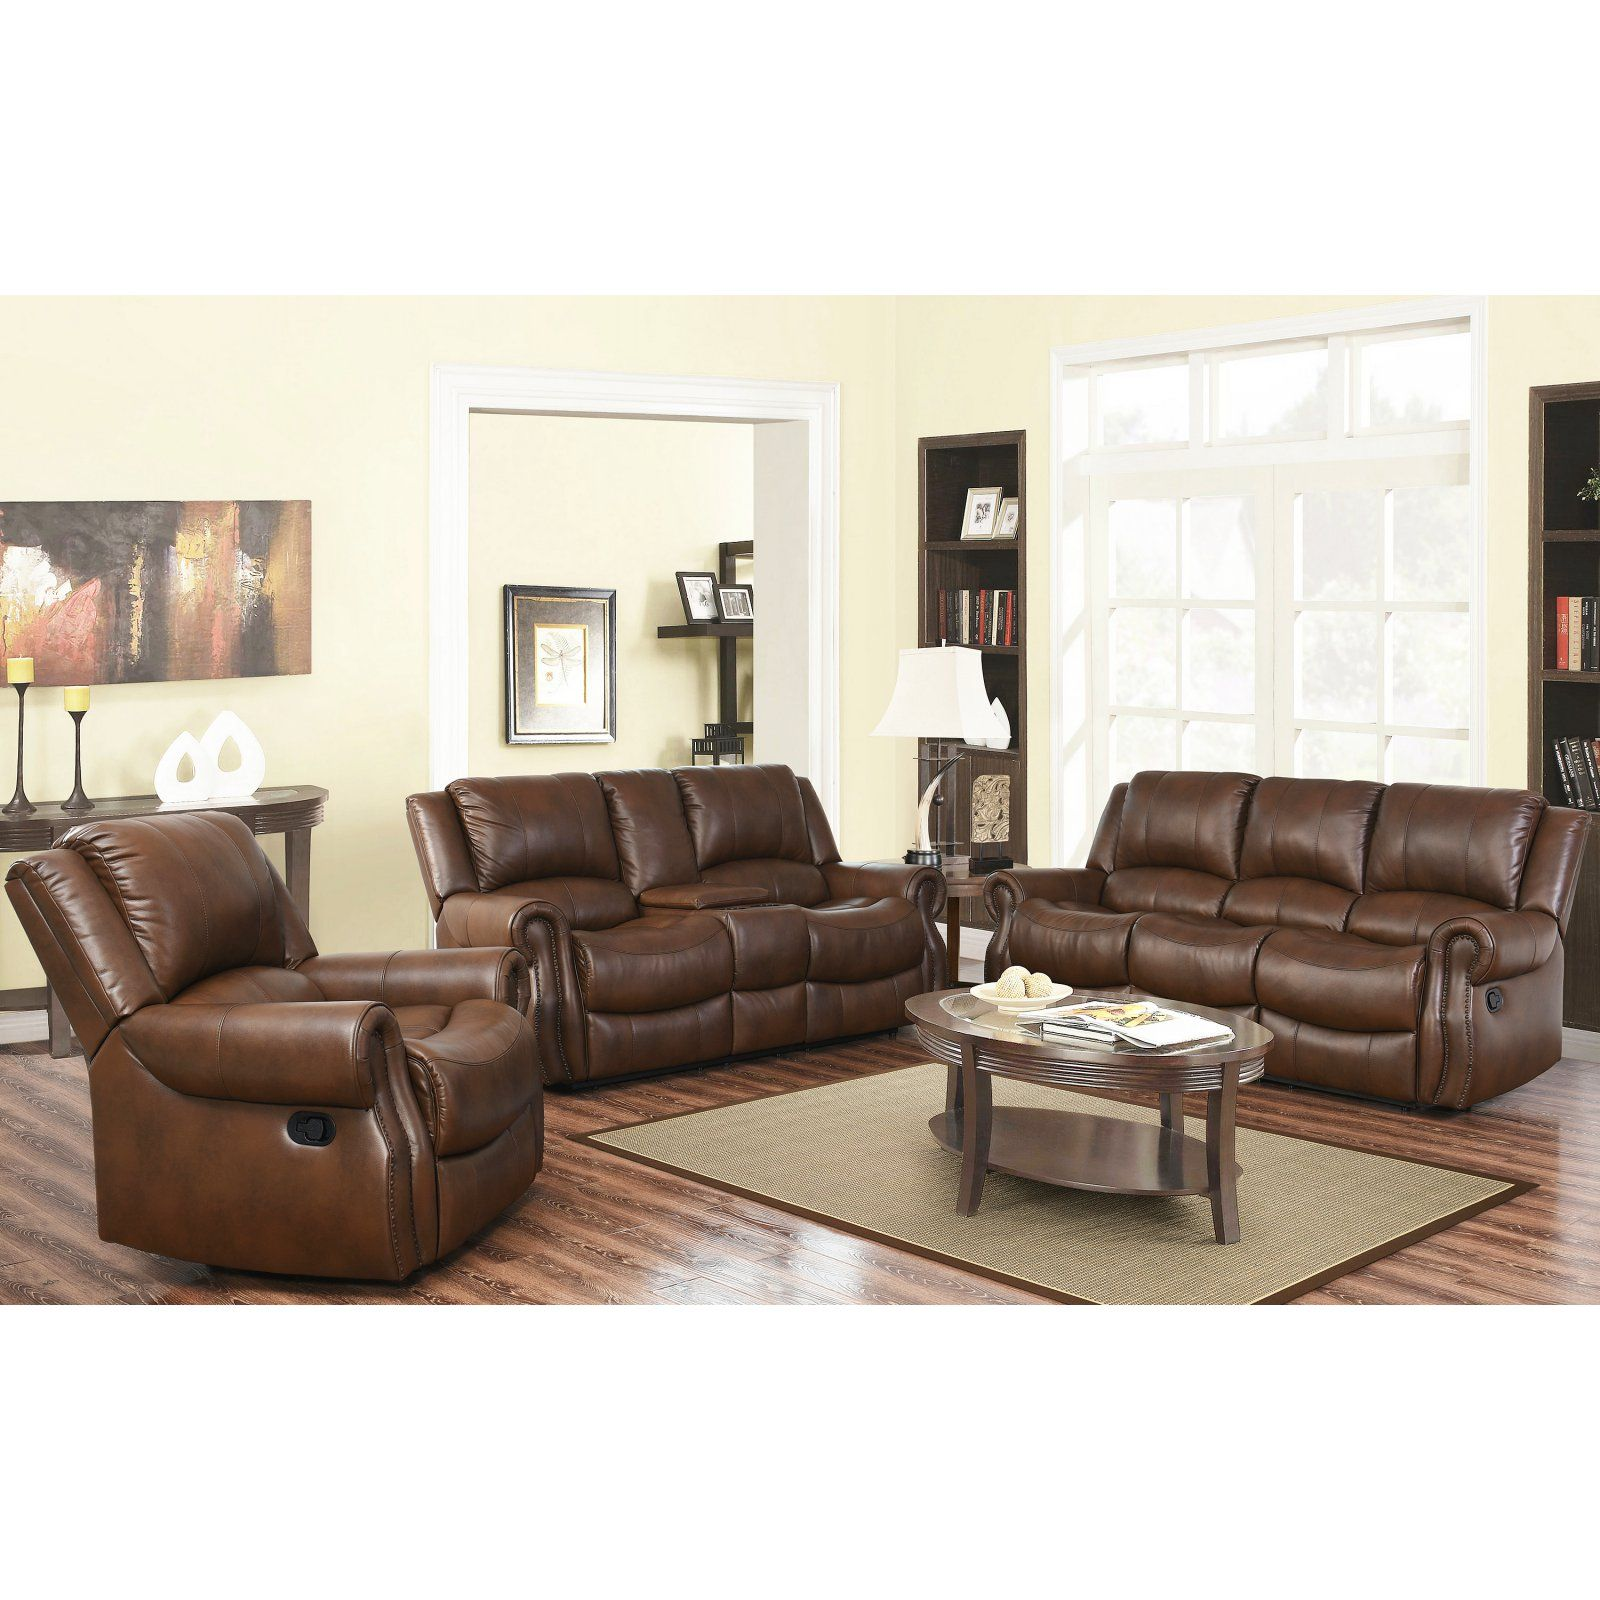 Remarkable Abbyson Living Ojai 3 Piece Mesa Camel Reclining Sofa Set Evergreenethics Interior Chair Design Evergreenethicsorg